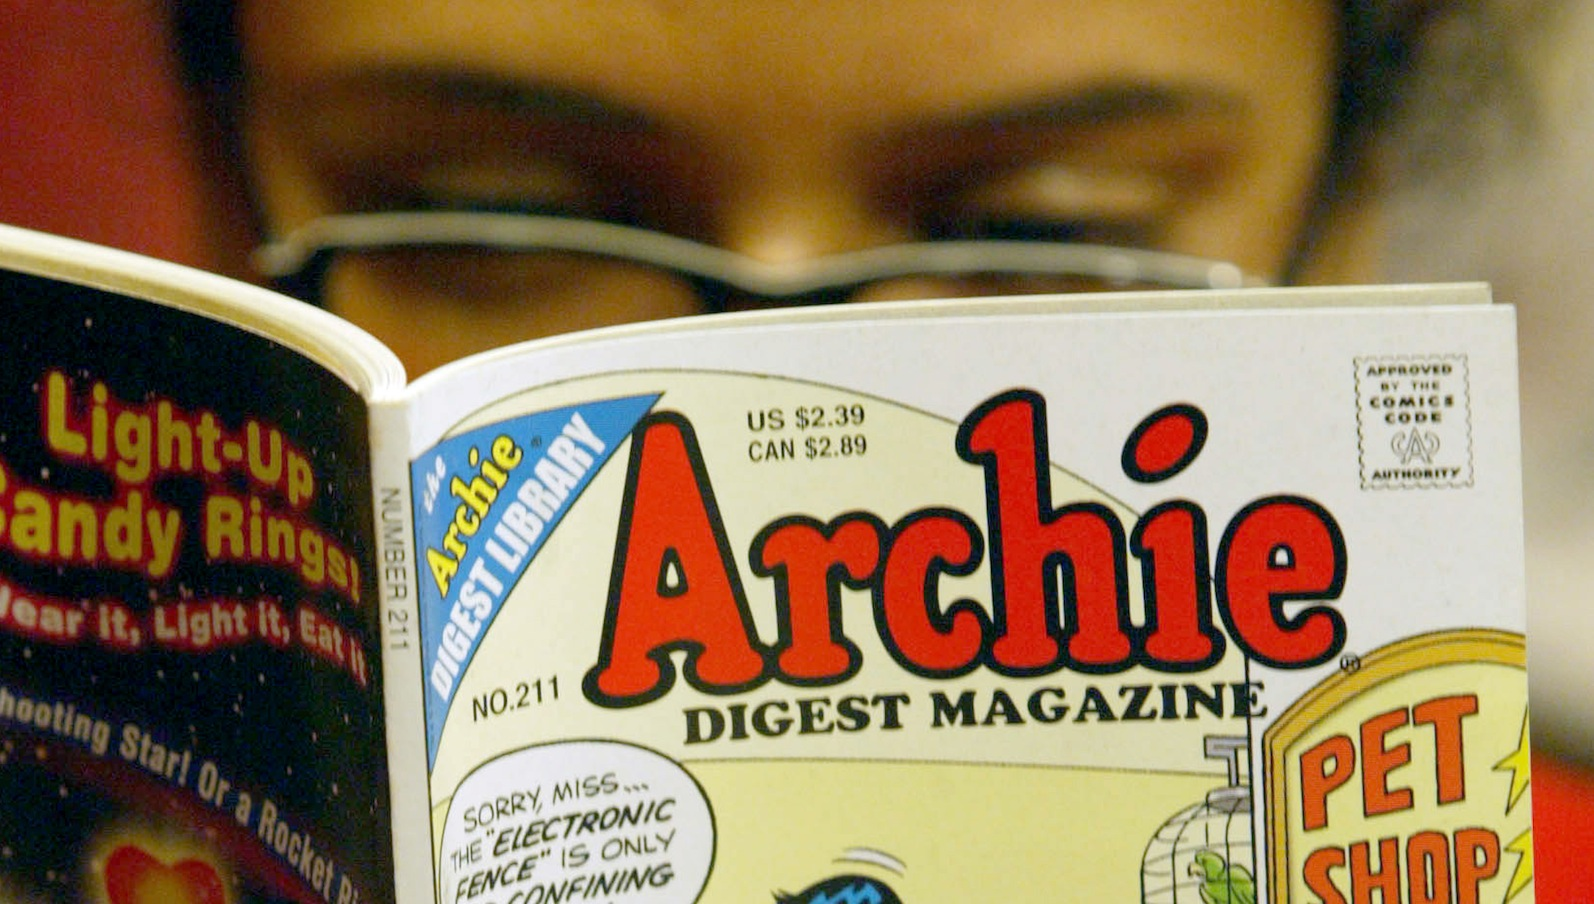 In this Monday, May 7, 2007, file photo, a girl reads an Archie comic at Oxford Book Shop in Calcutta, India. The two CEOs of the company that publishes Archie comics on Wednesday, June 6, 2012, ended their court feud over control of the comics kingdom, but now some relatives are accusing both sides of funny business.